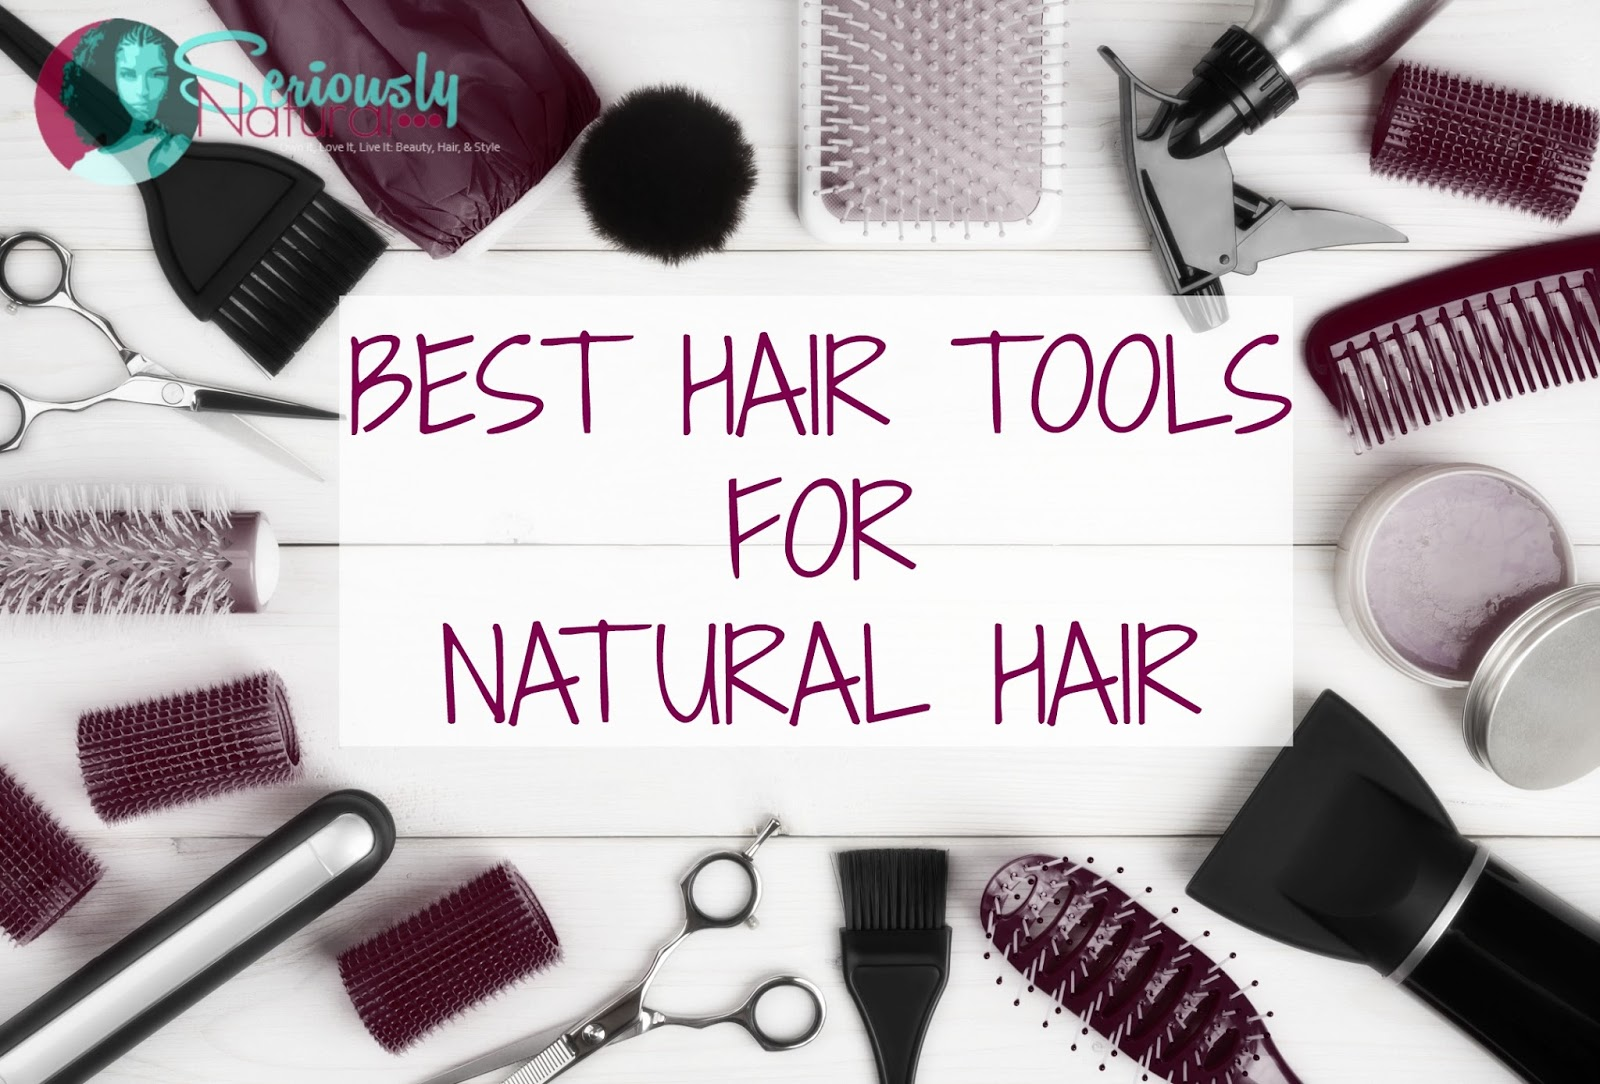 Best Hair Tools For Natural Hair